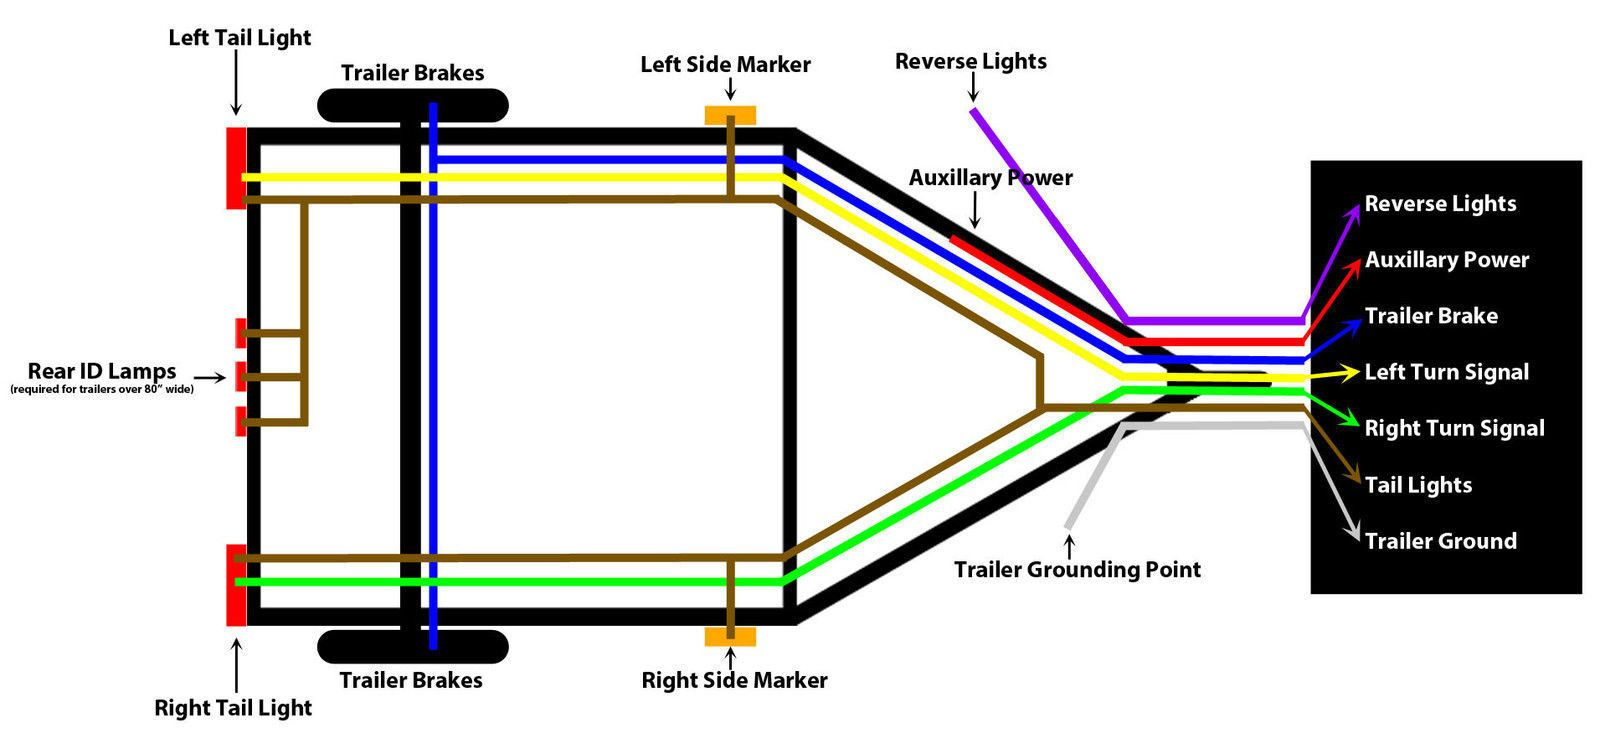 Trailers Over 80 Wire Diagram - Google Search | Tiny House Trailer - Quality Cargo Trailer Wiring Diagram